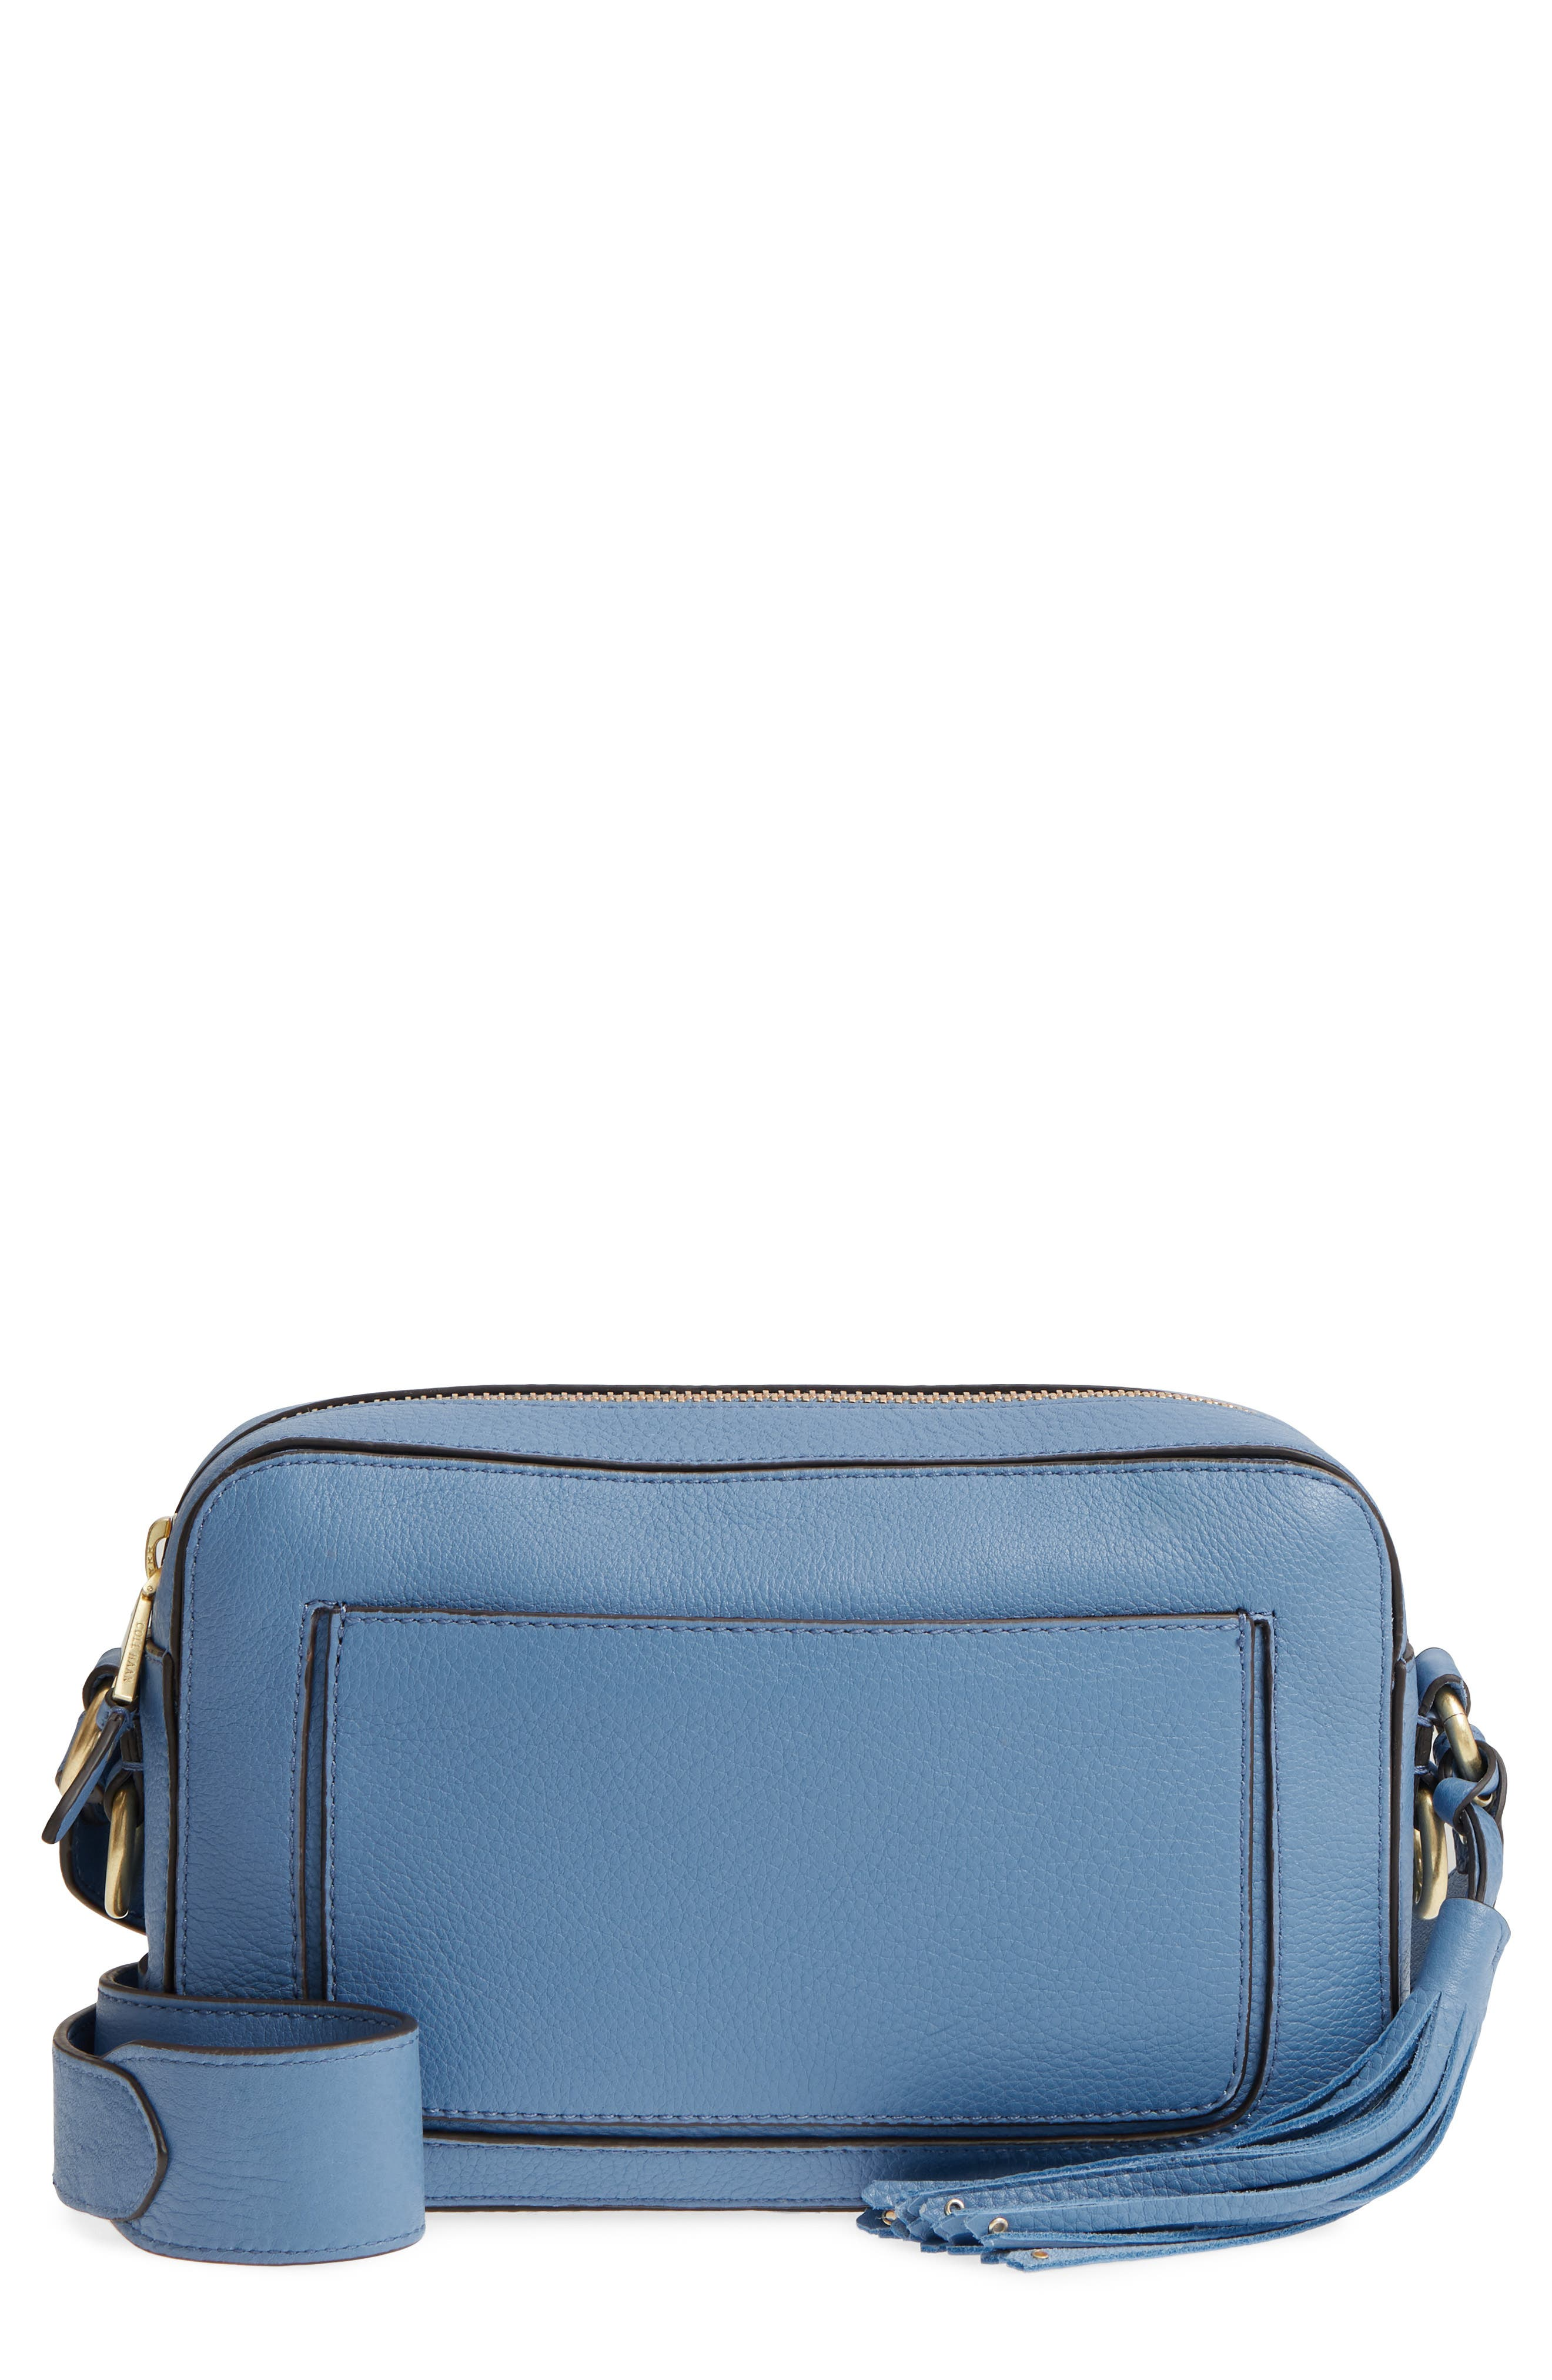 Cassidy RFID Pebbled Leather Camera Bag,                             Main thumbnail 1, color,                             Riverside